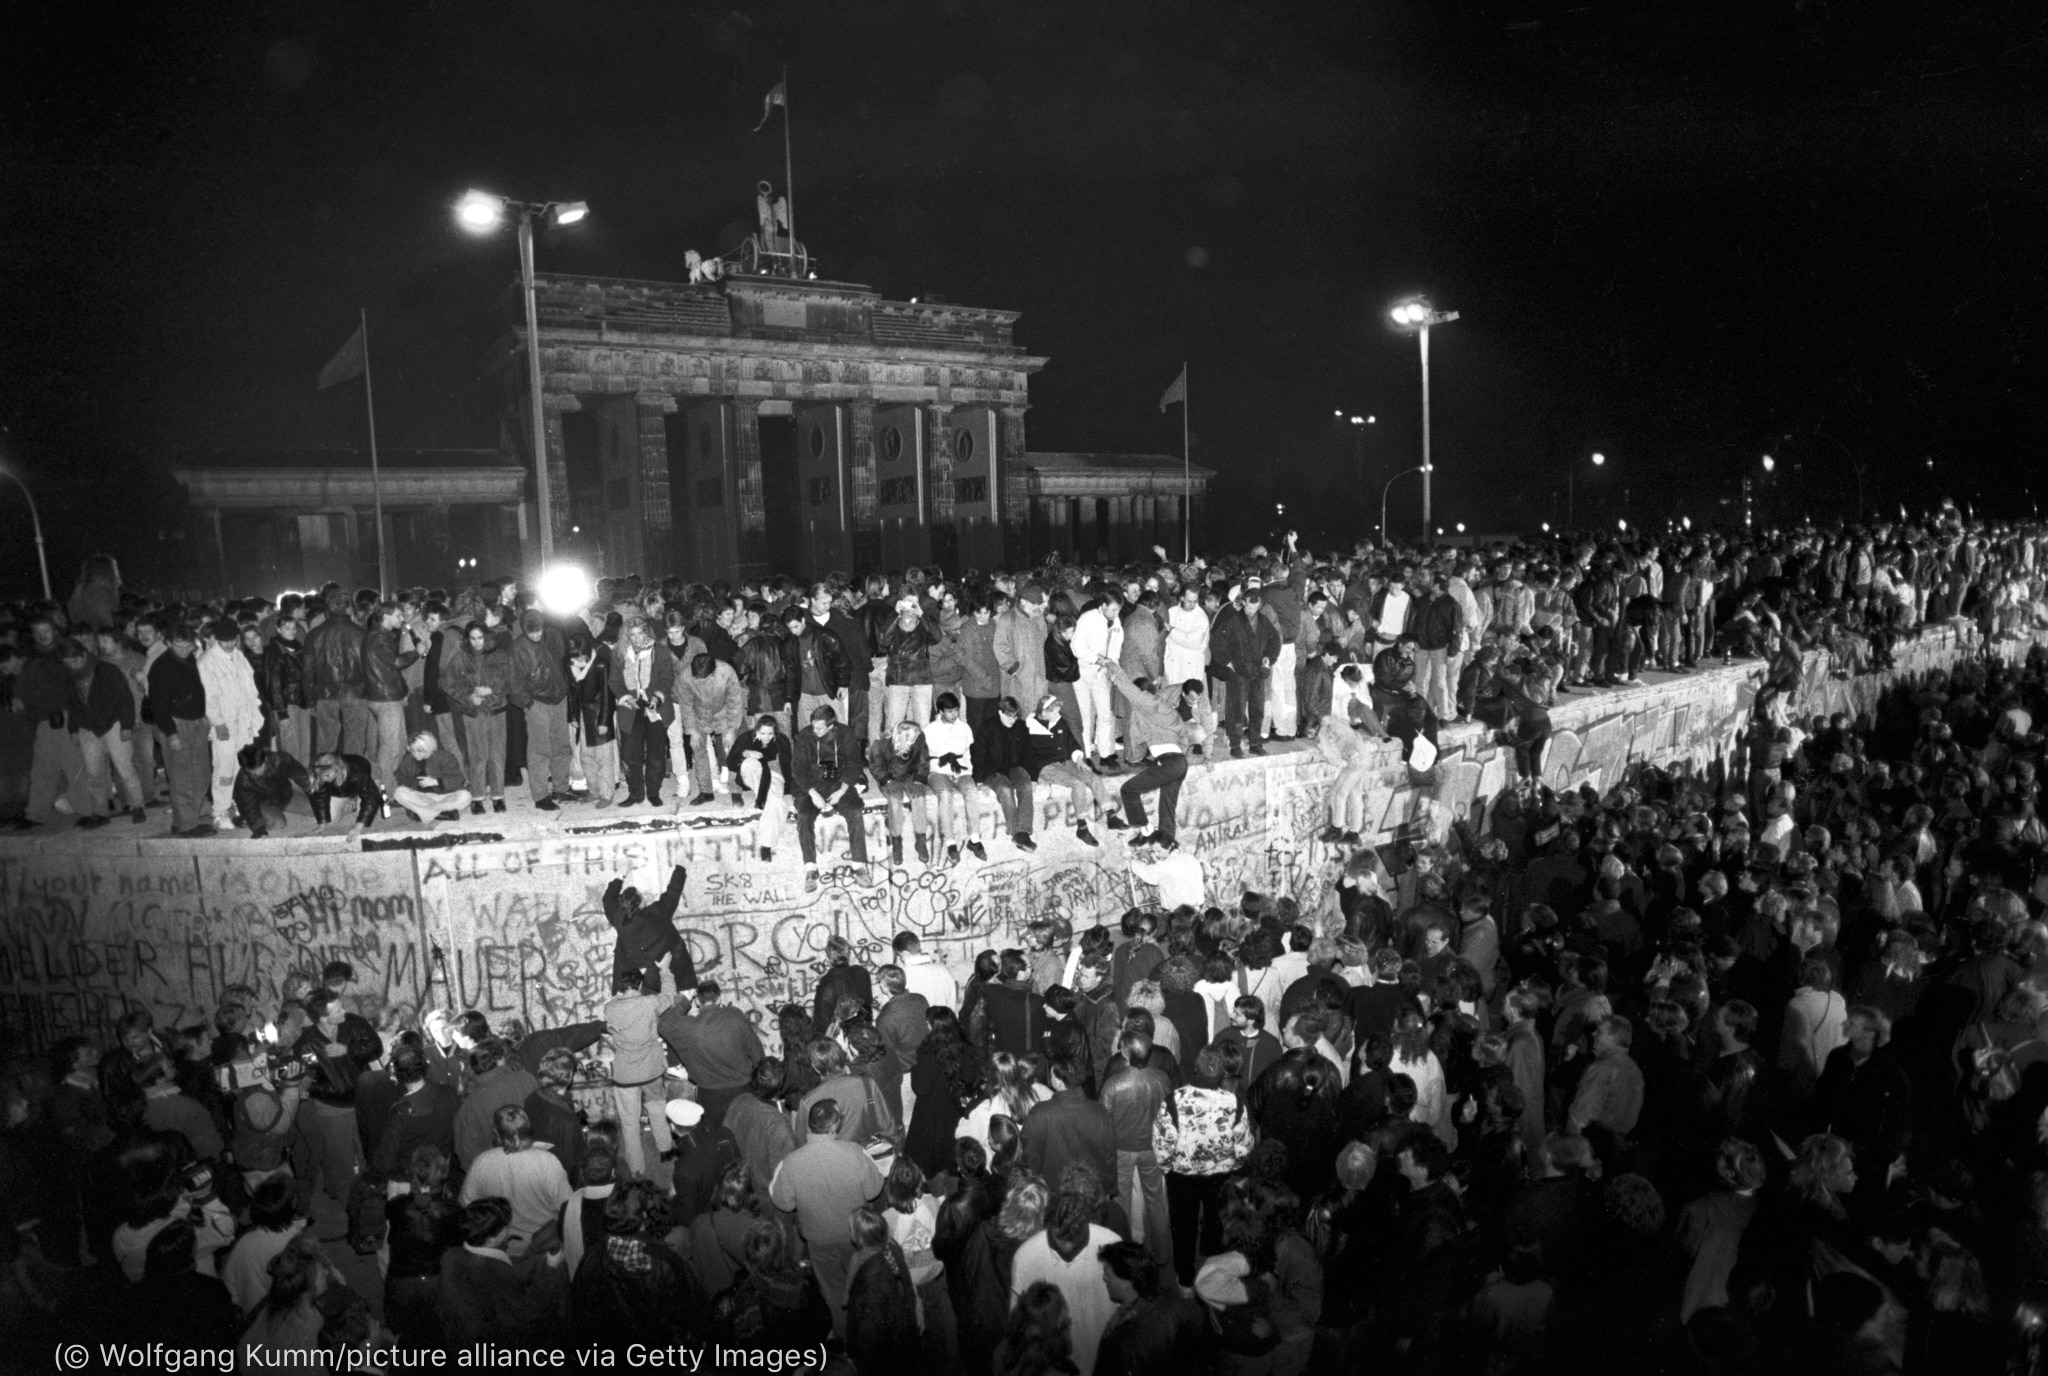 Large crowd celebrating at wall, with members standing on top (© Wolfgang Kumm/picture alliance via Getty Images)